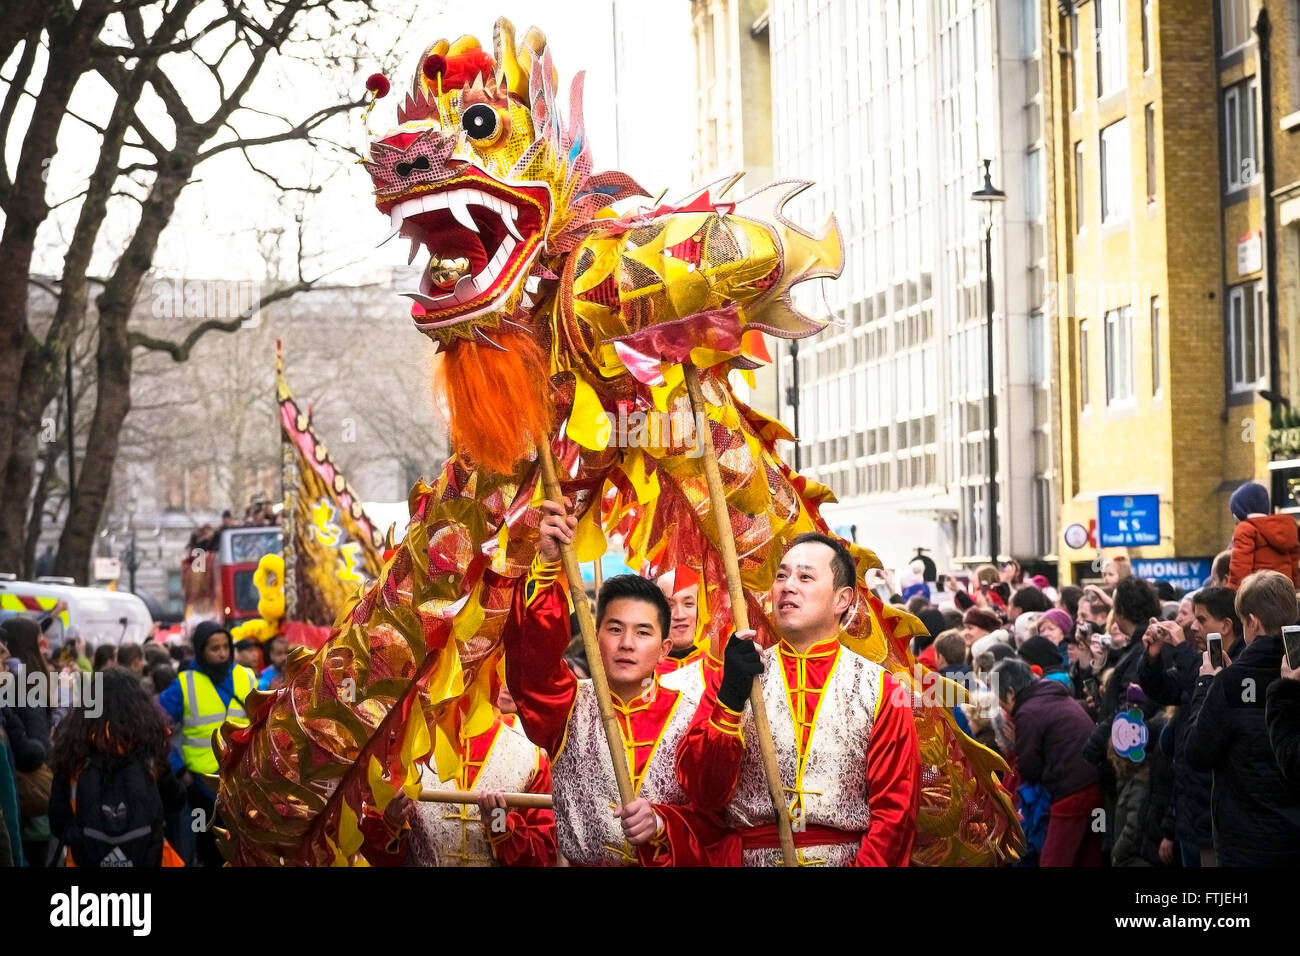 In London thousands of people celebrate the Chinese New Year. - Stock Image